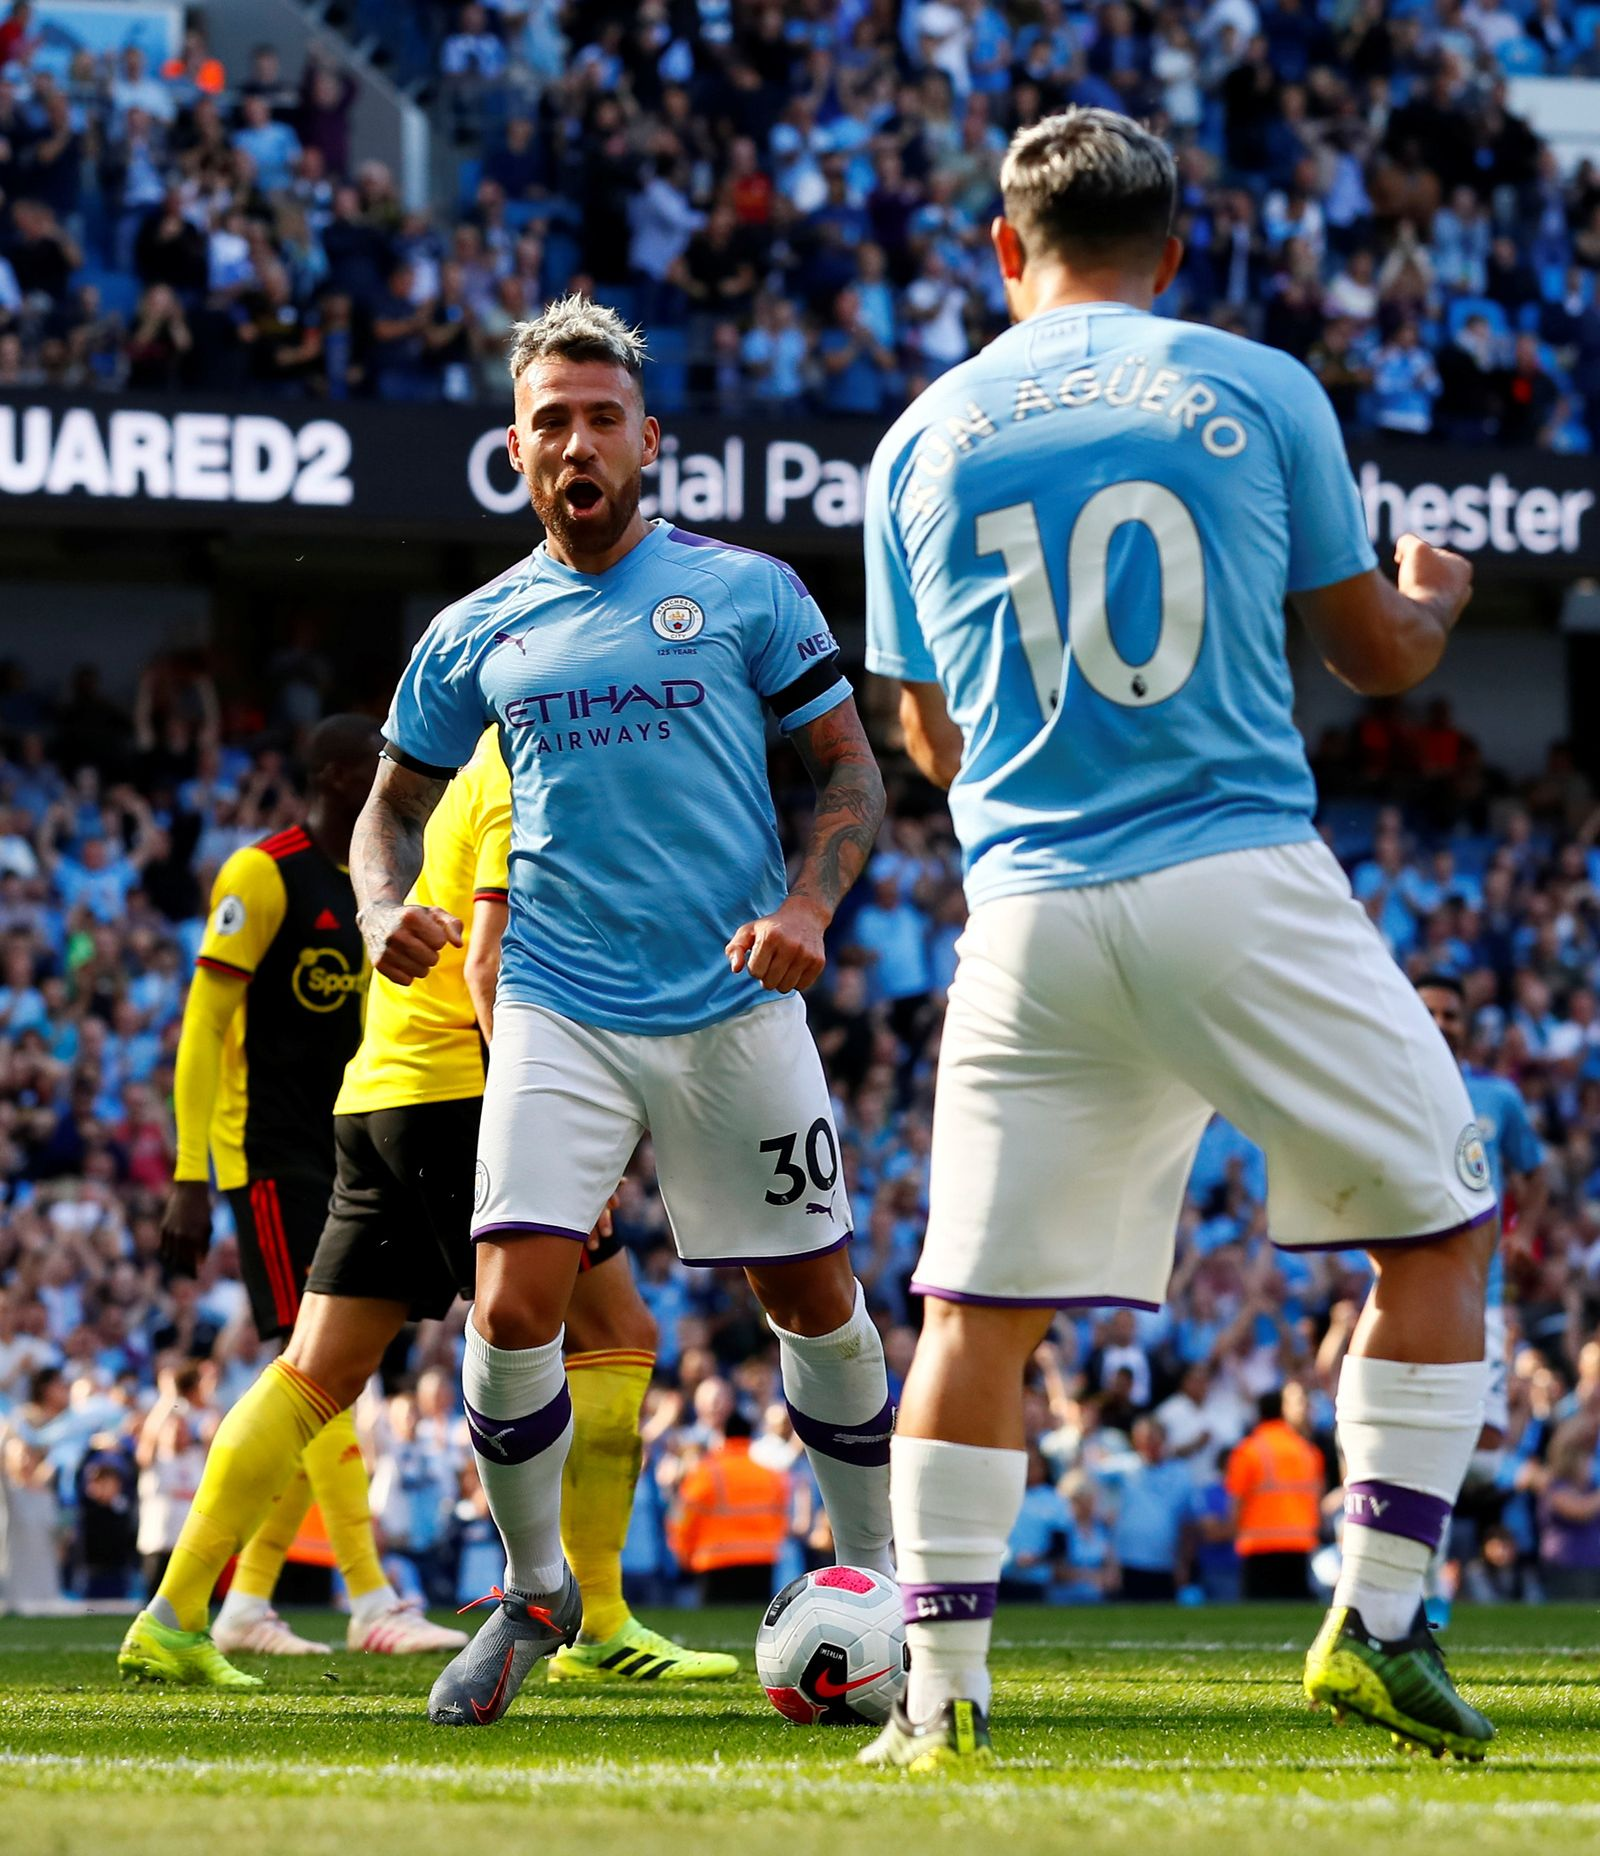 SOCCER-ENGLAND-MCI-WAT/REPORT